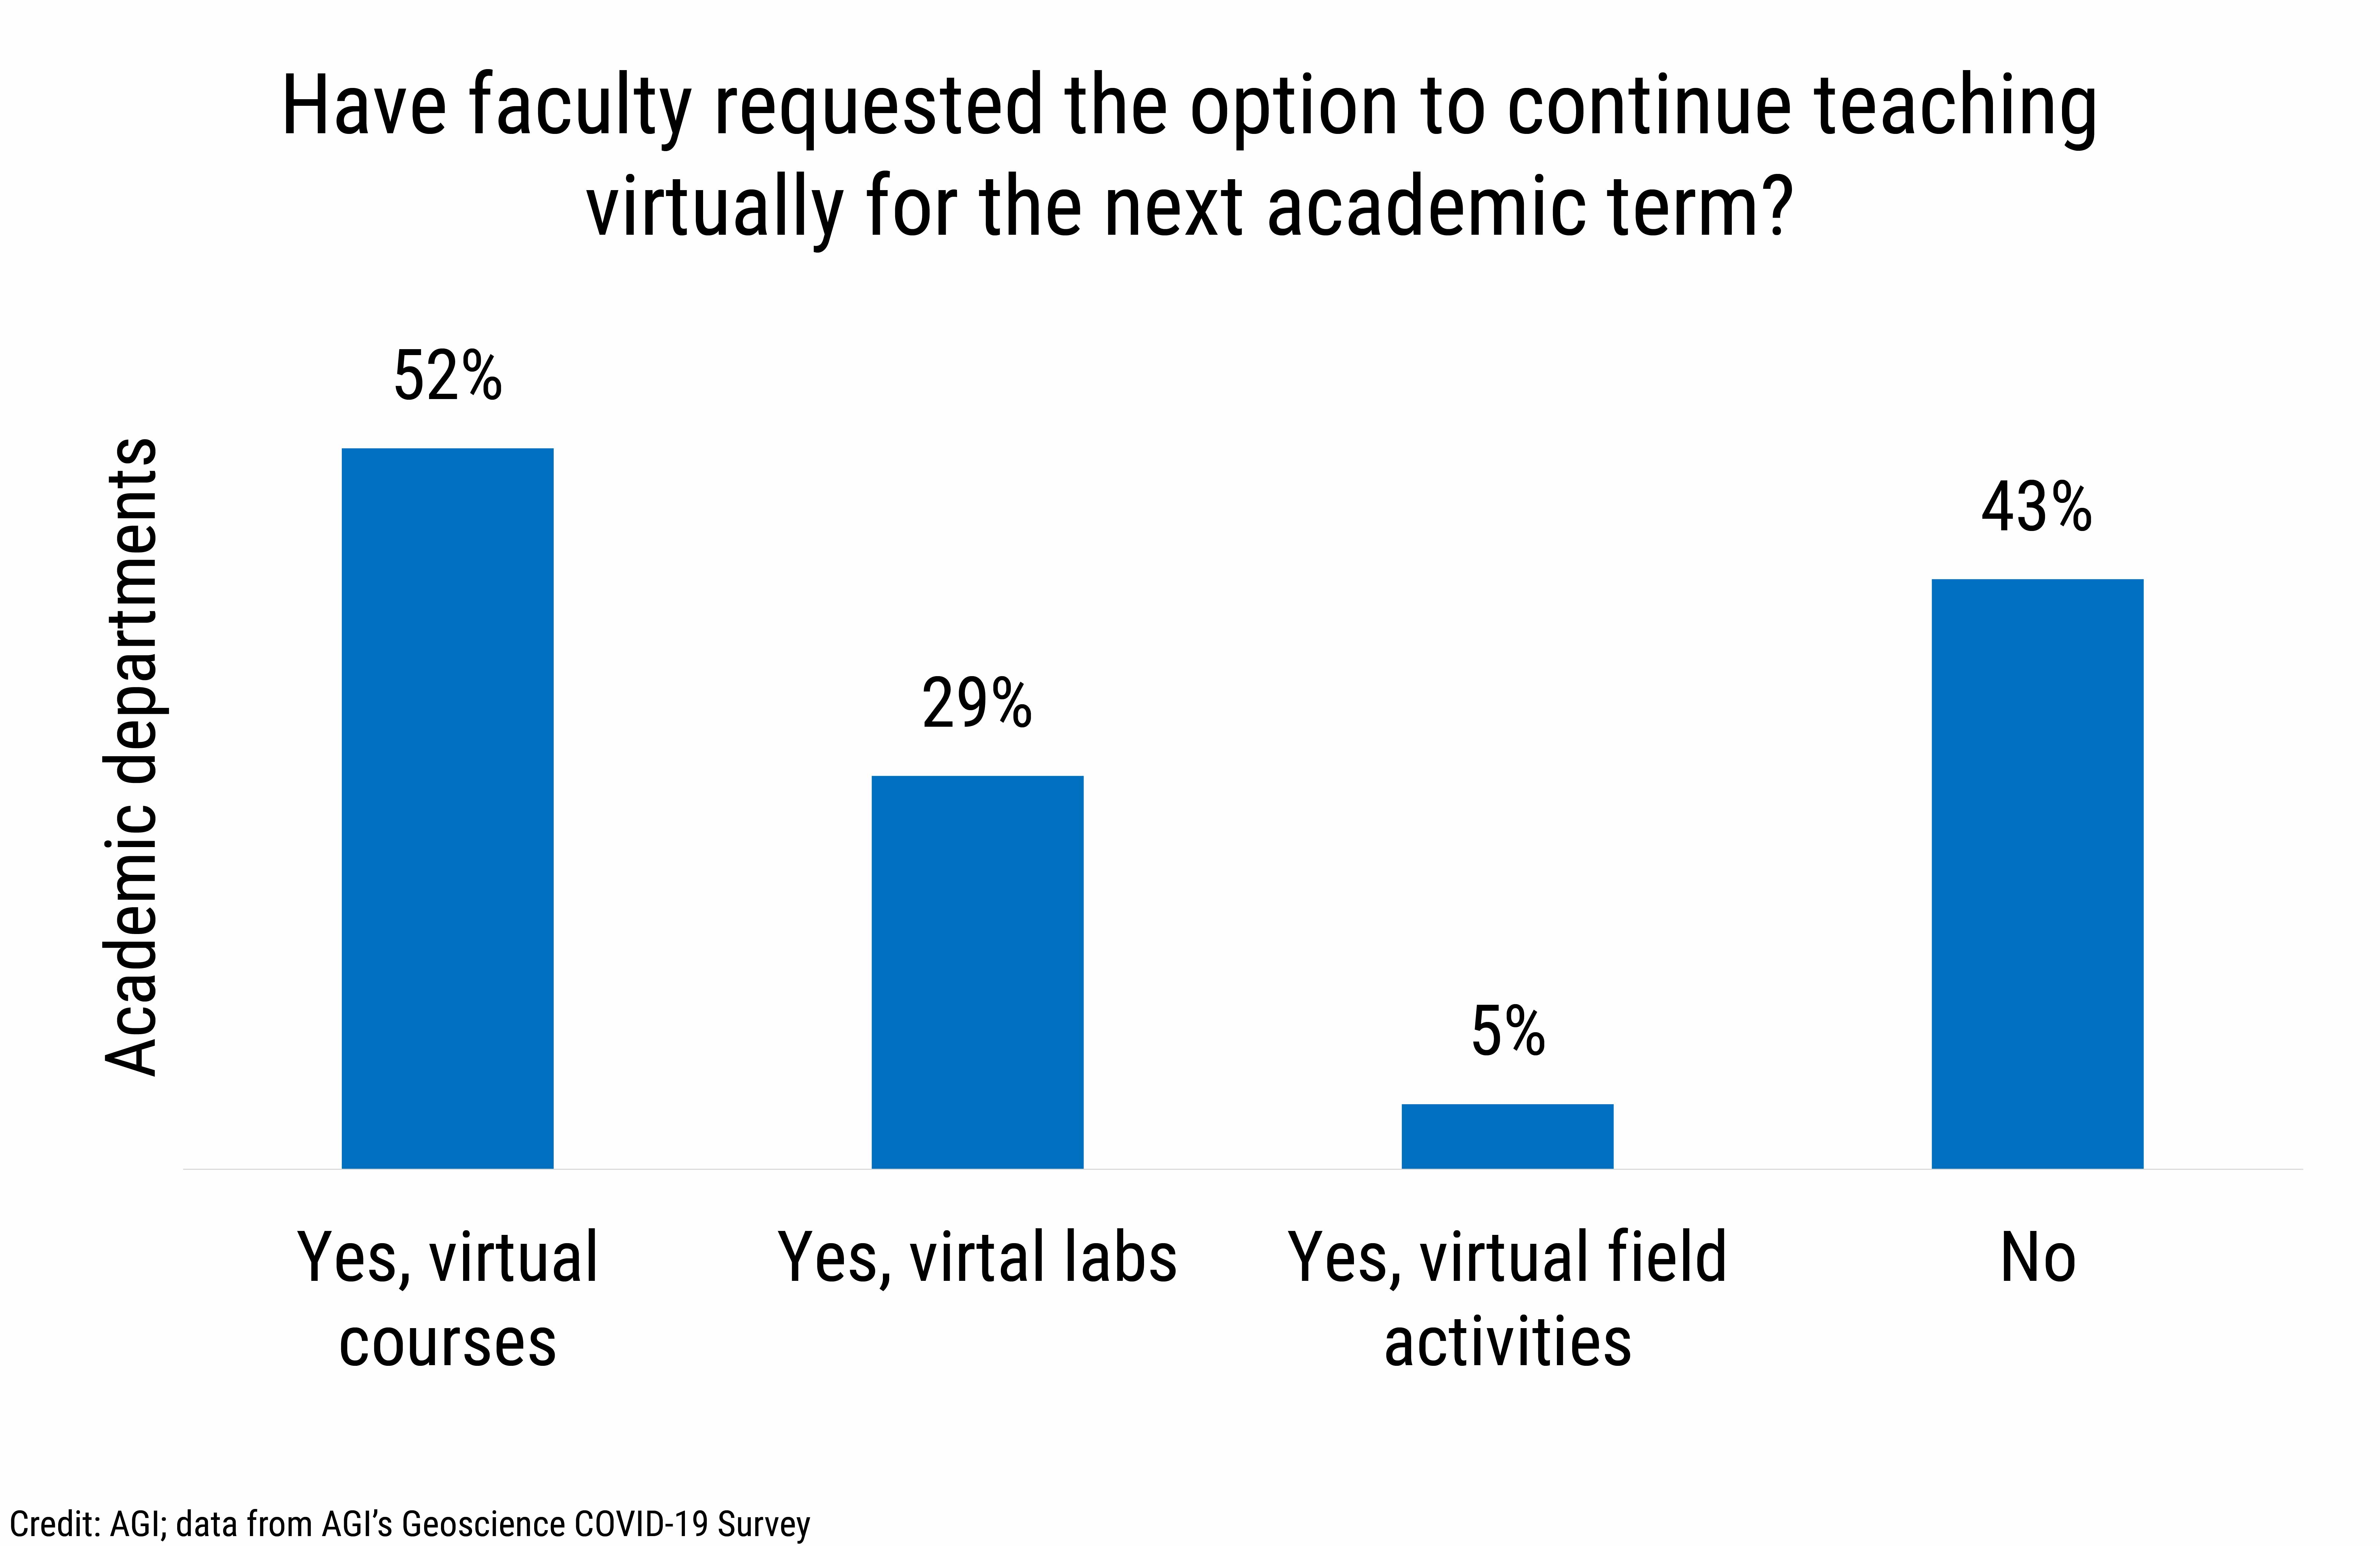 DB_2021-014 chart 13: Have faculty requested the option to continue teaching virtually for the next academic term? (Credit: AGI; data from AGI's Geoscience COVID-19 Survey)